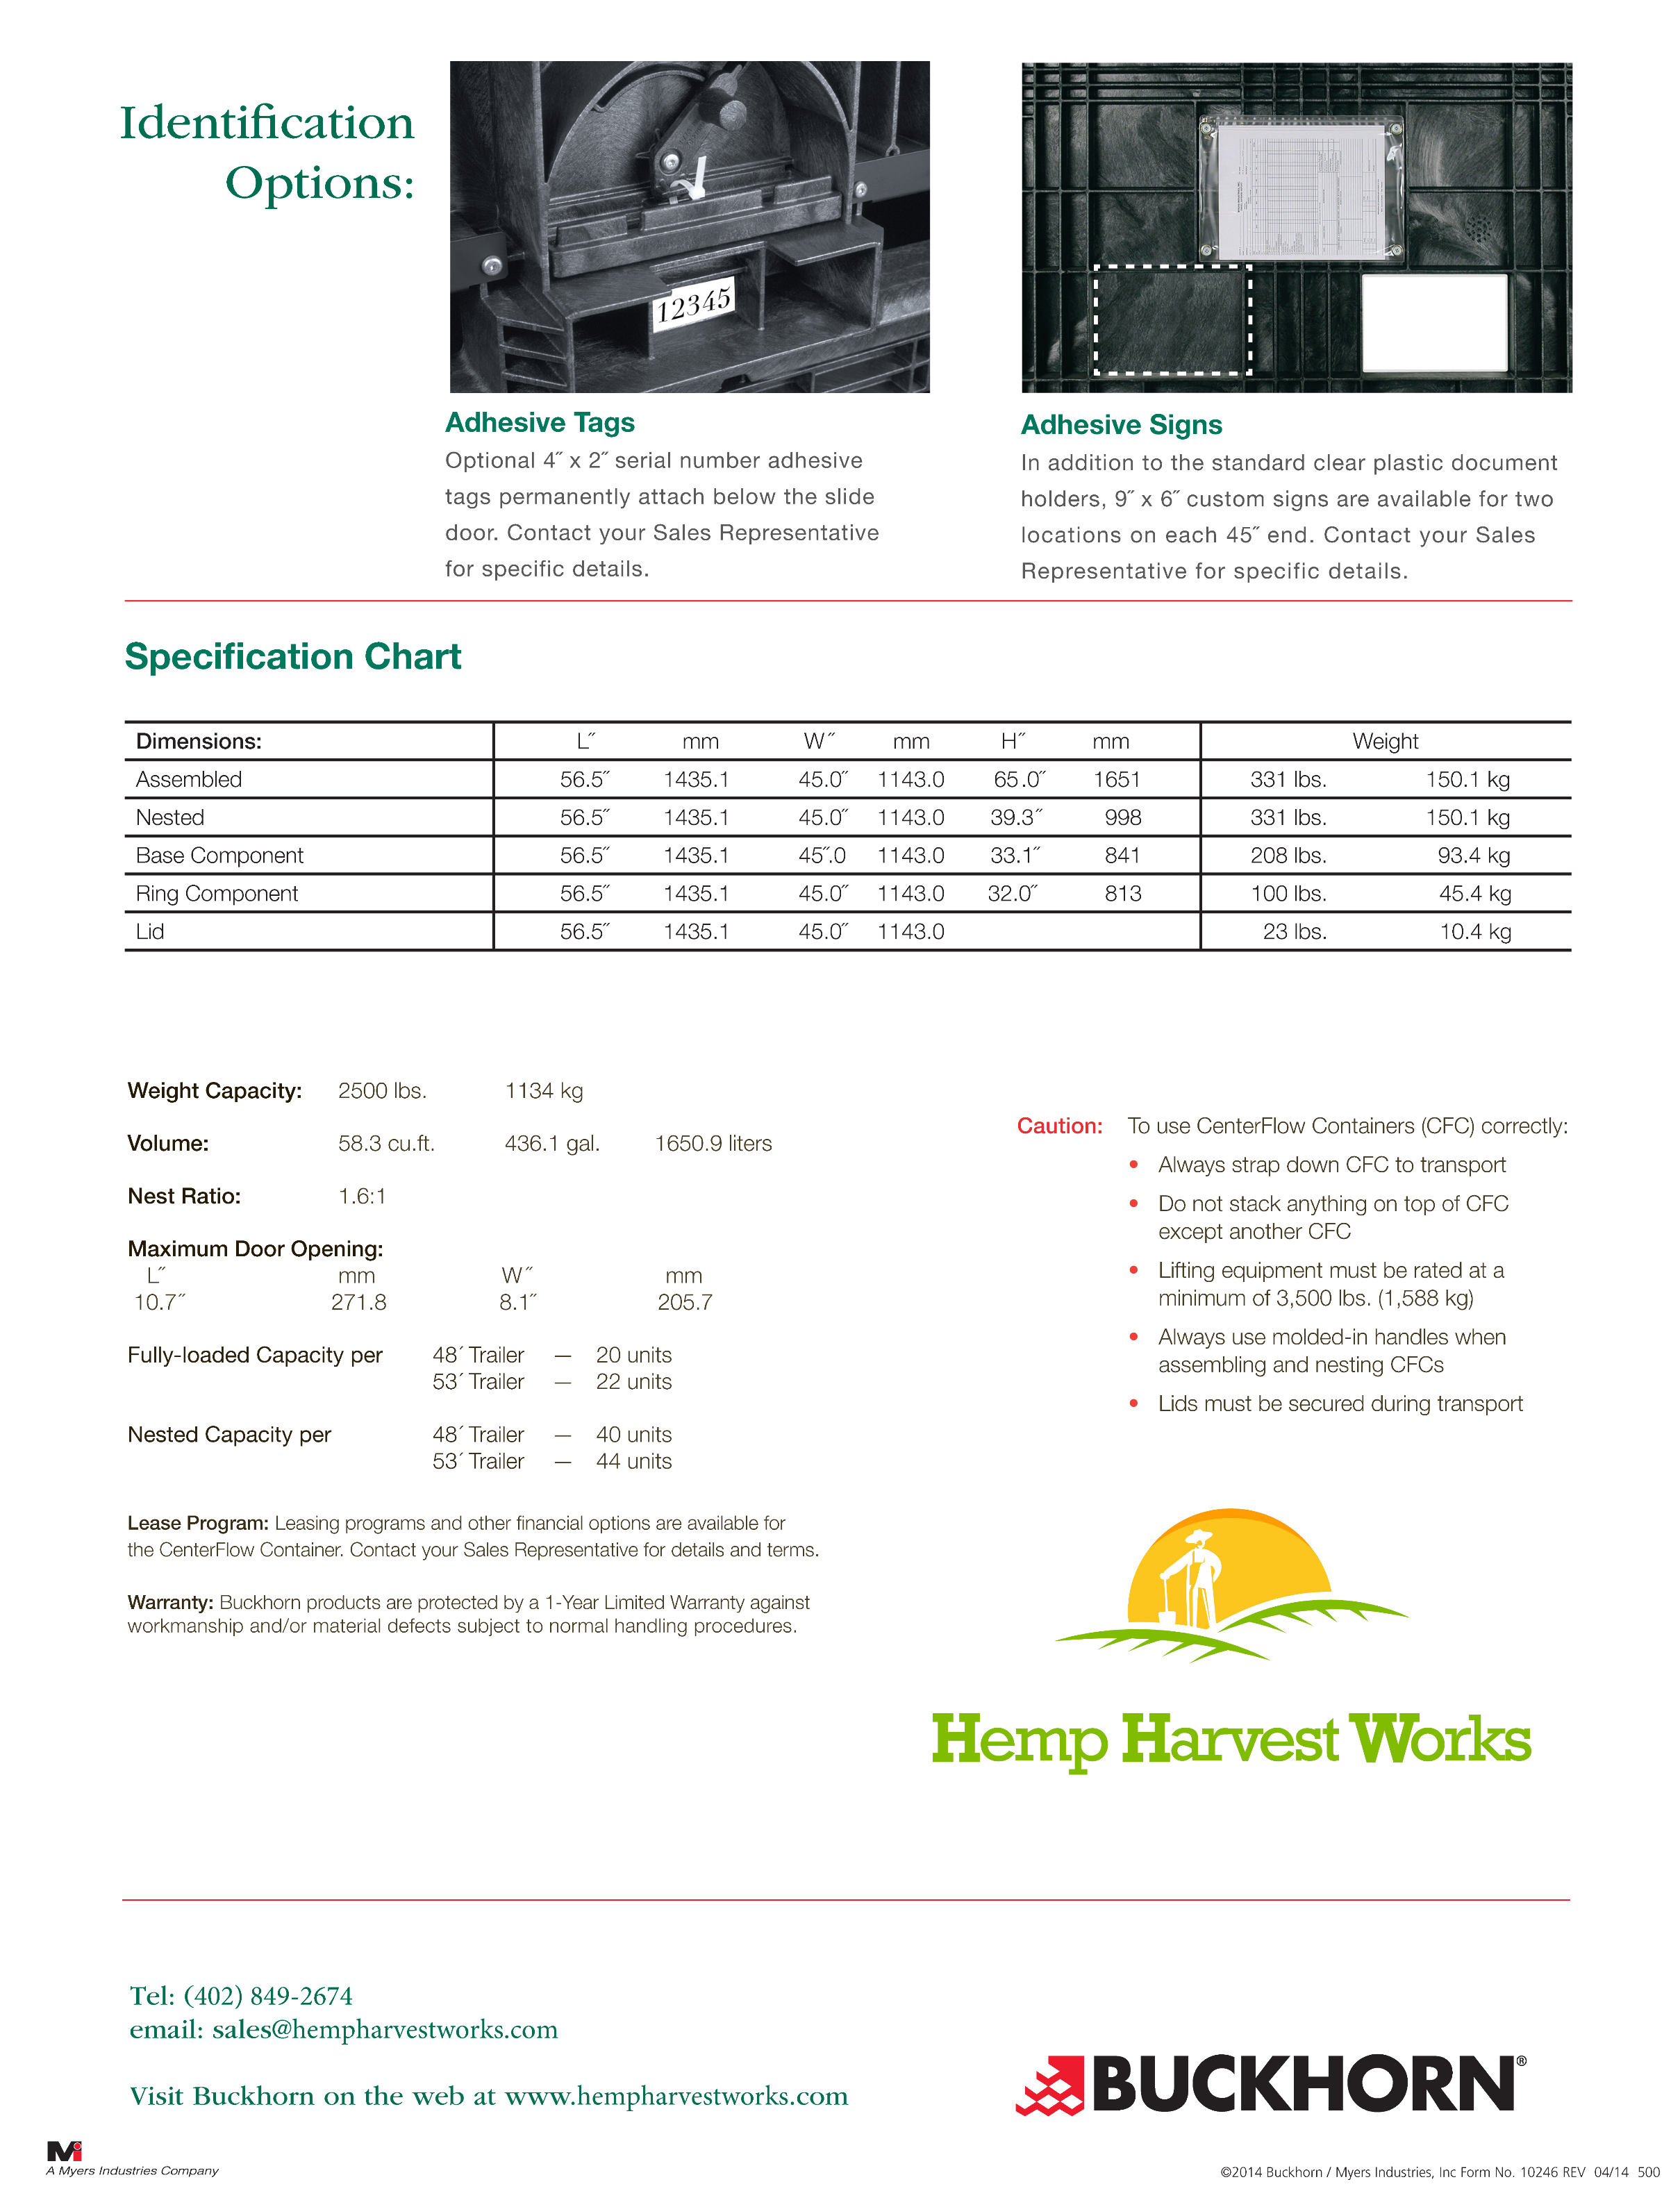 centerflow-brochure HHW_Page_4 small.png